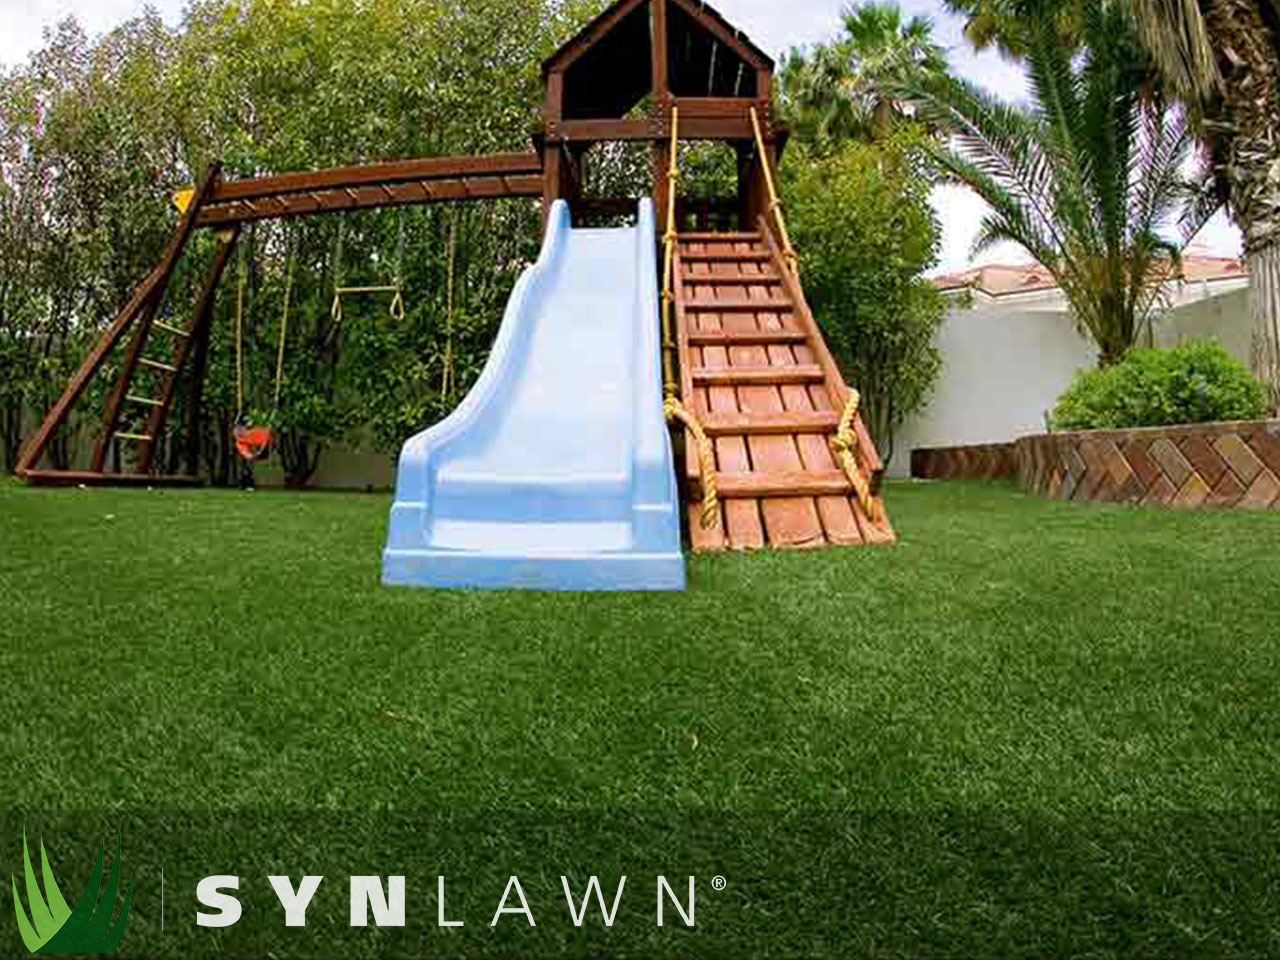 SYNLawn Playground Photo 25